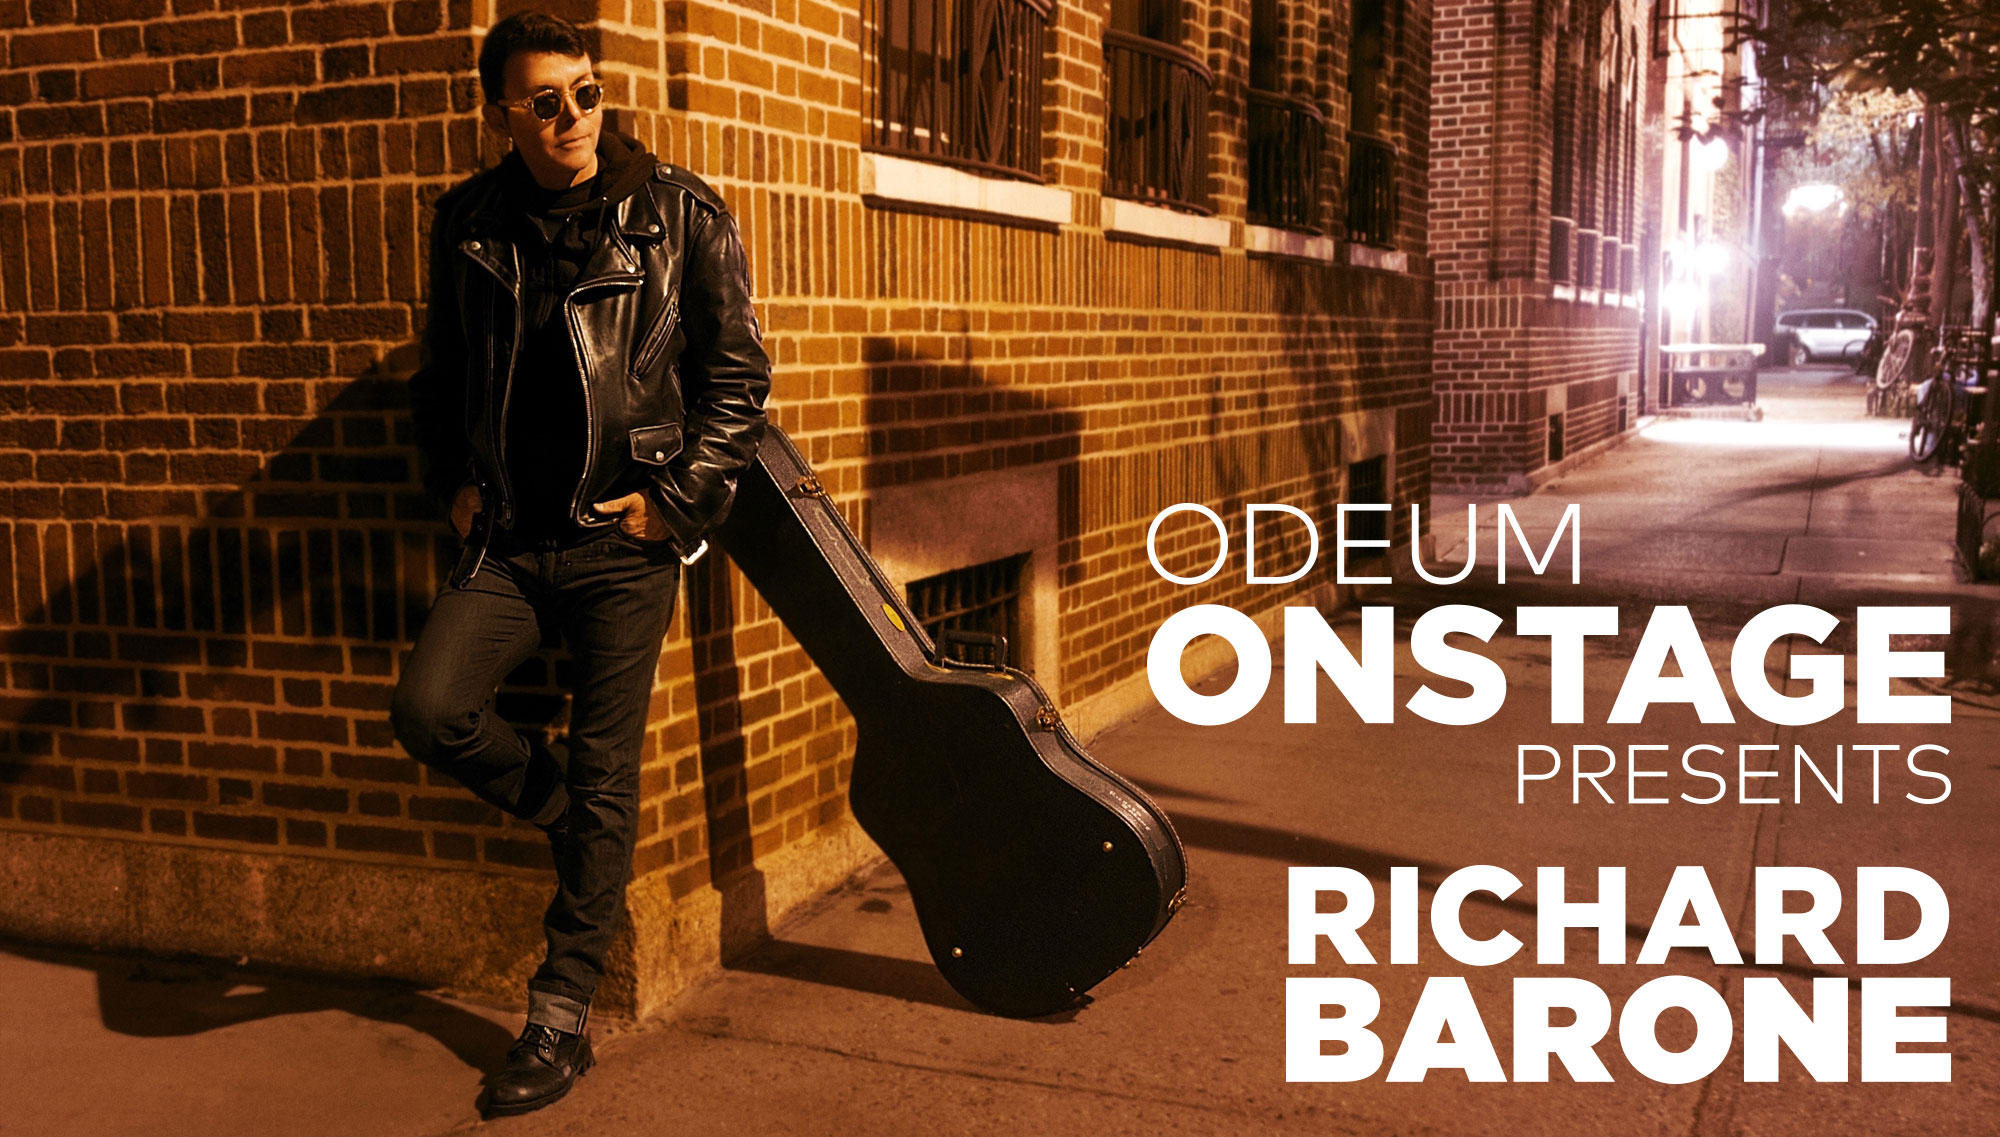 ODEUM ONSTAGE PRESENTS: RICHARD BARONE   <h5>with special guest Tyler-James Kelly of The Silks  </h5><h5>December 7  </h5>